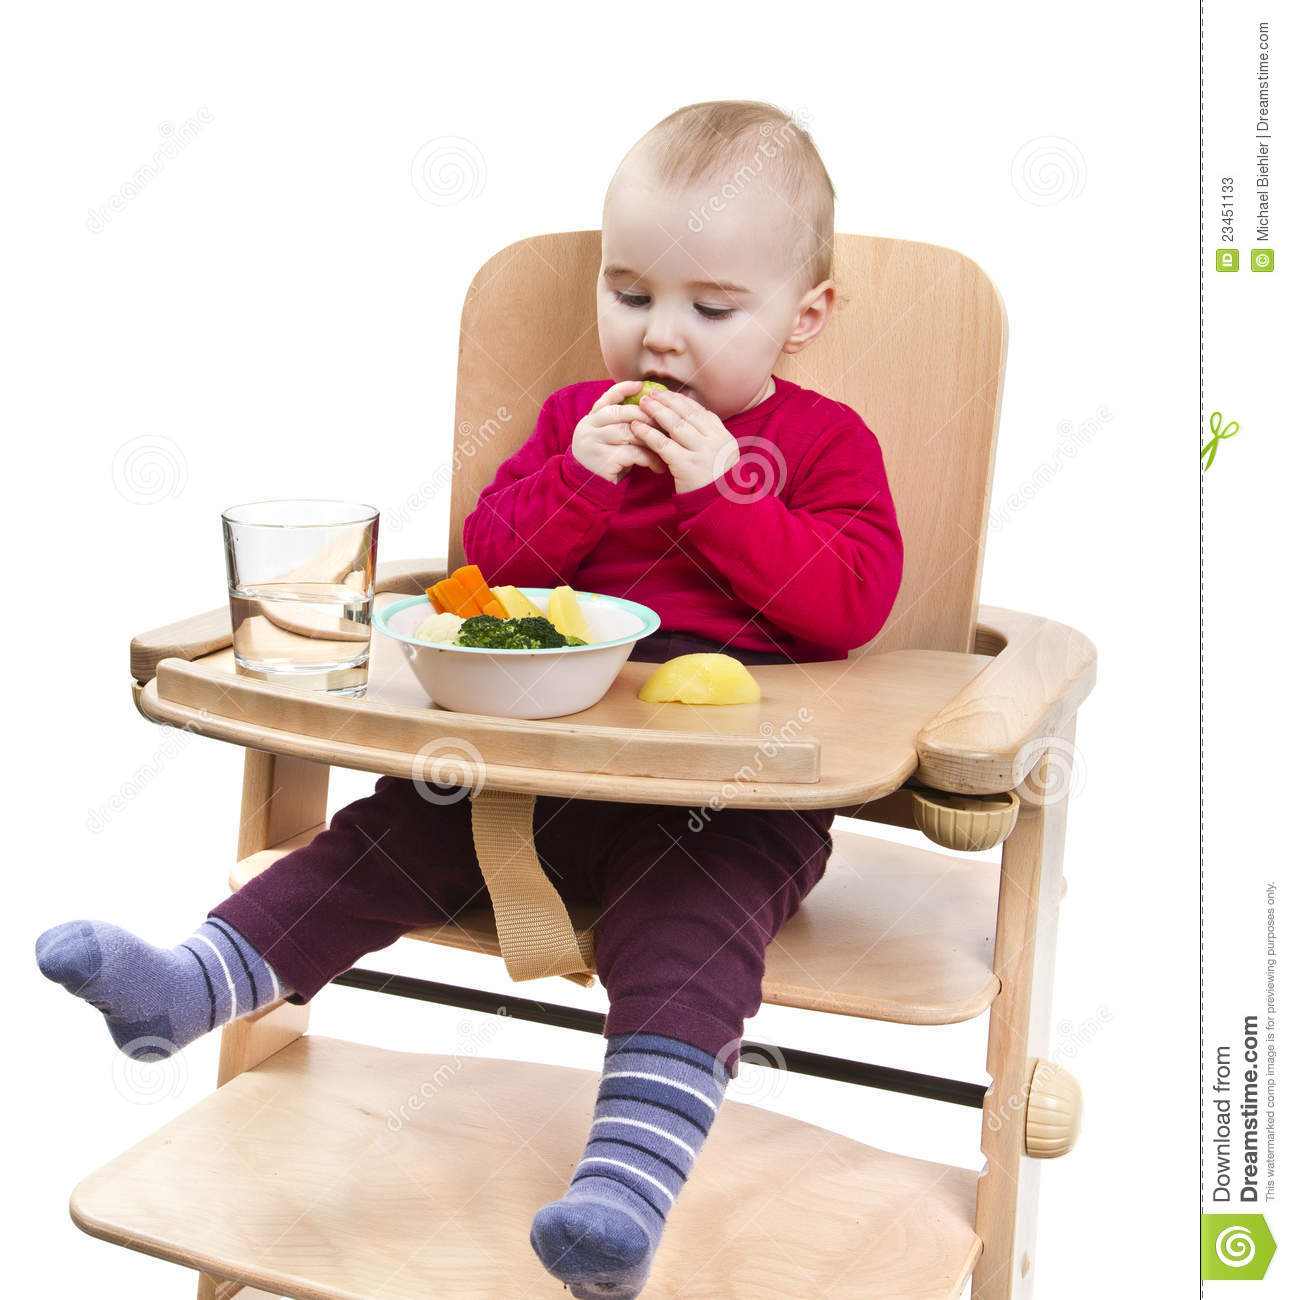 Young Child Eating In High Chair Stock Image Image Of